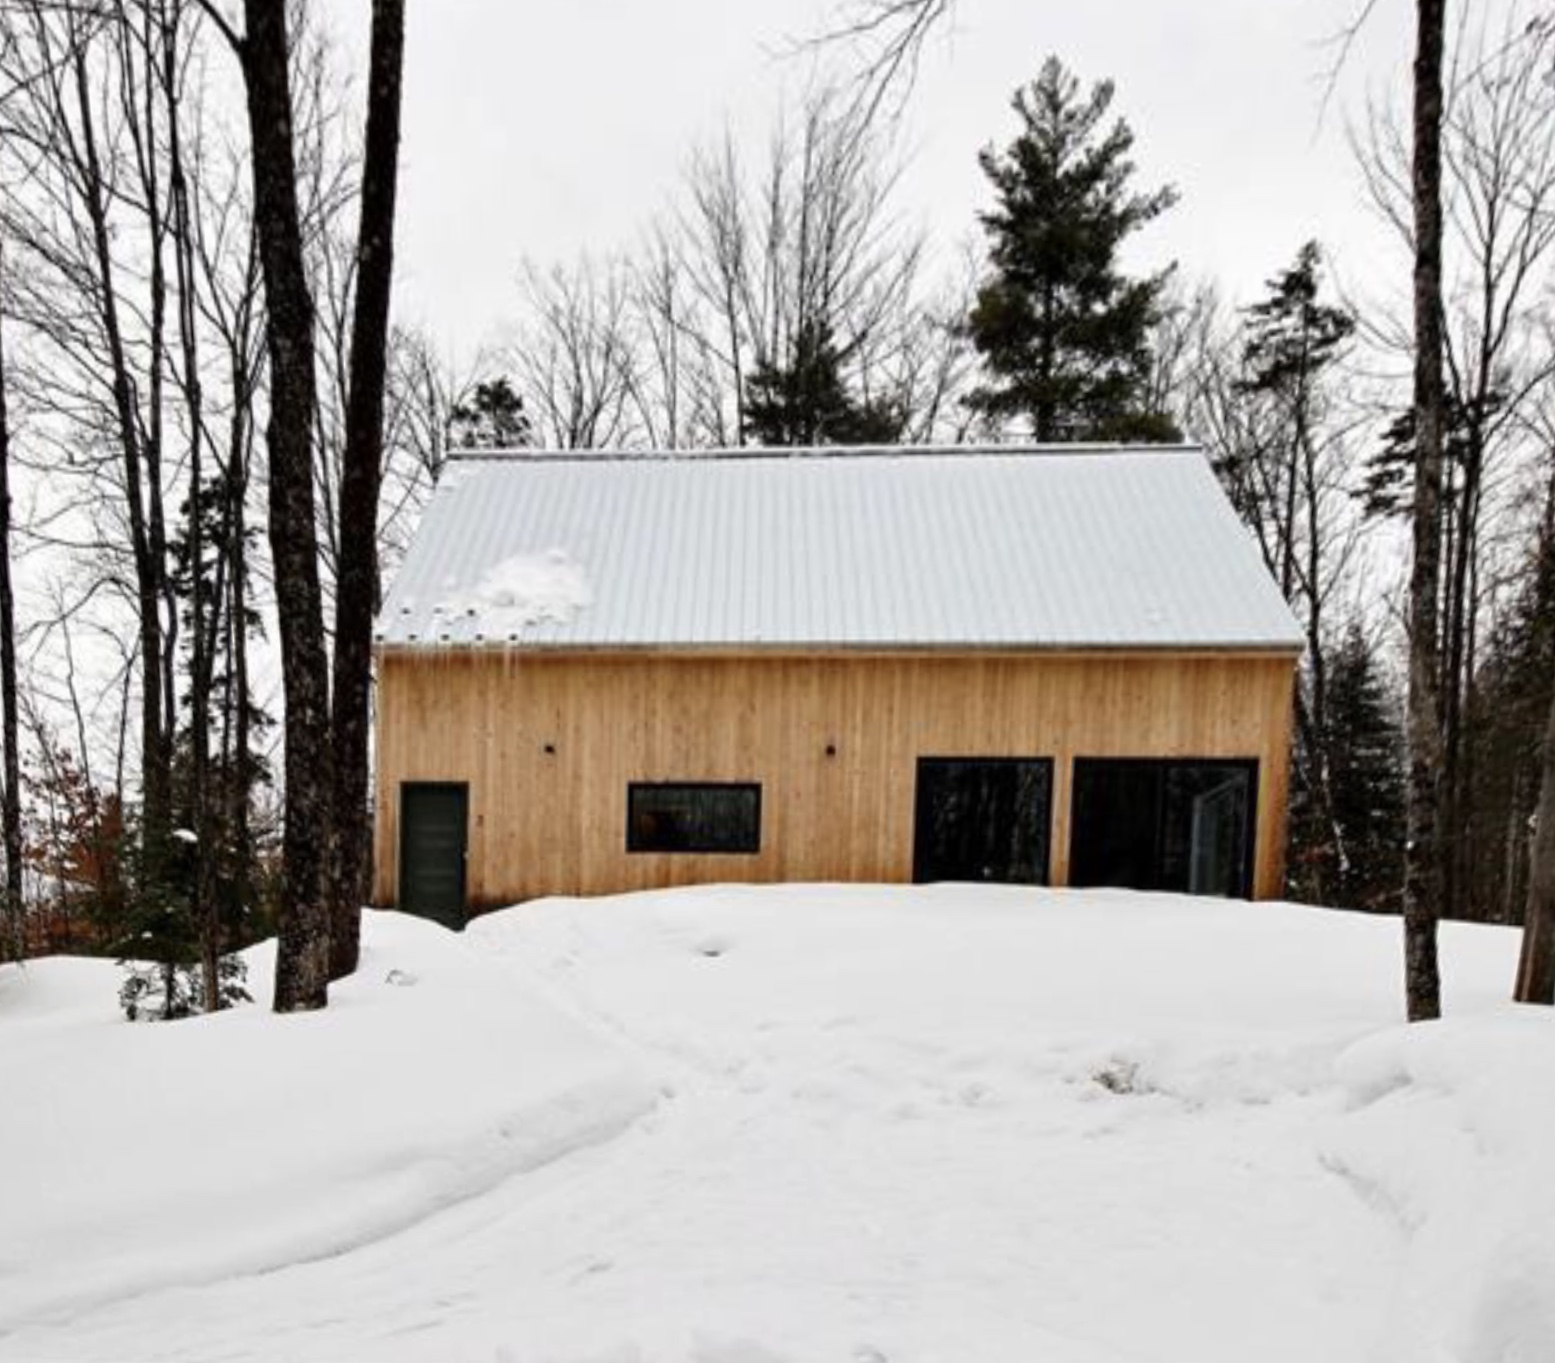 Cottages for rent near a ski mountain in Estearn Townships #8